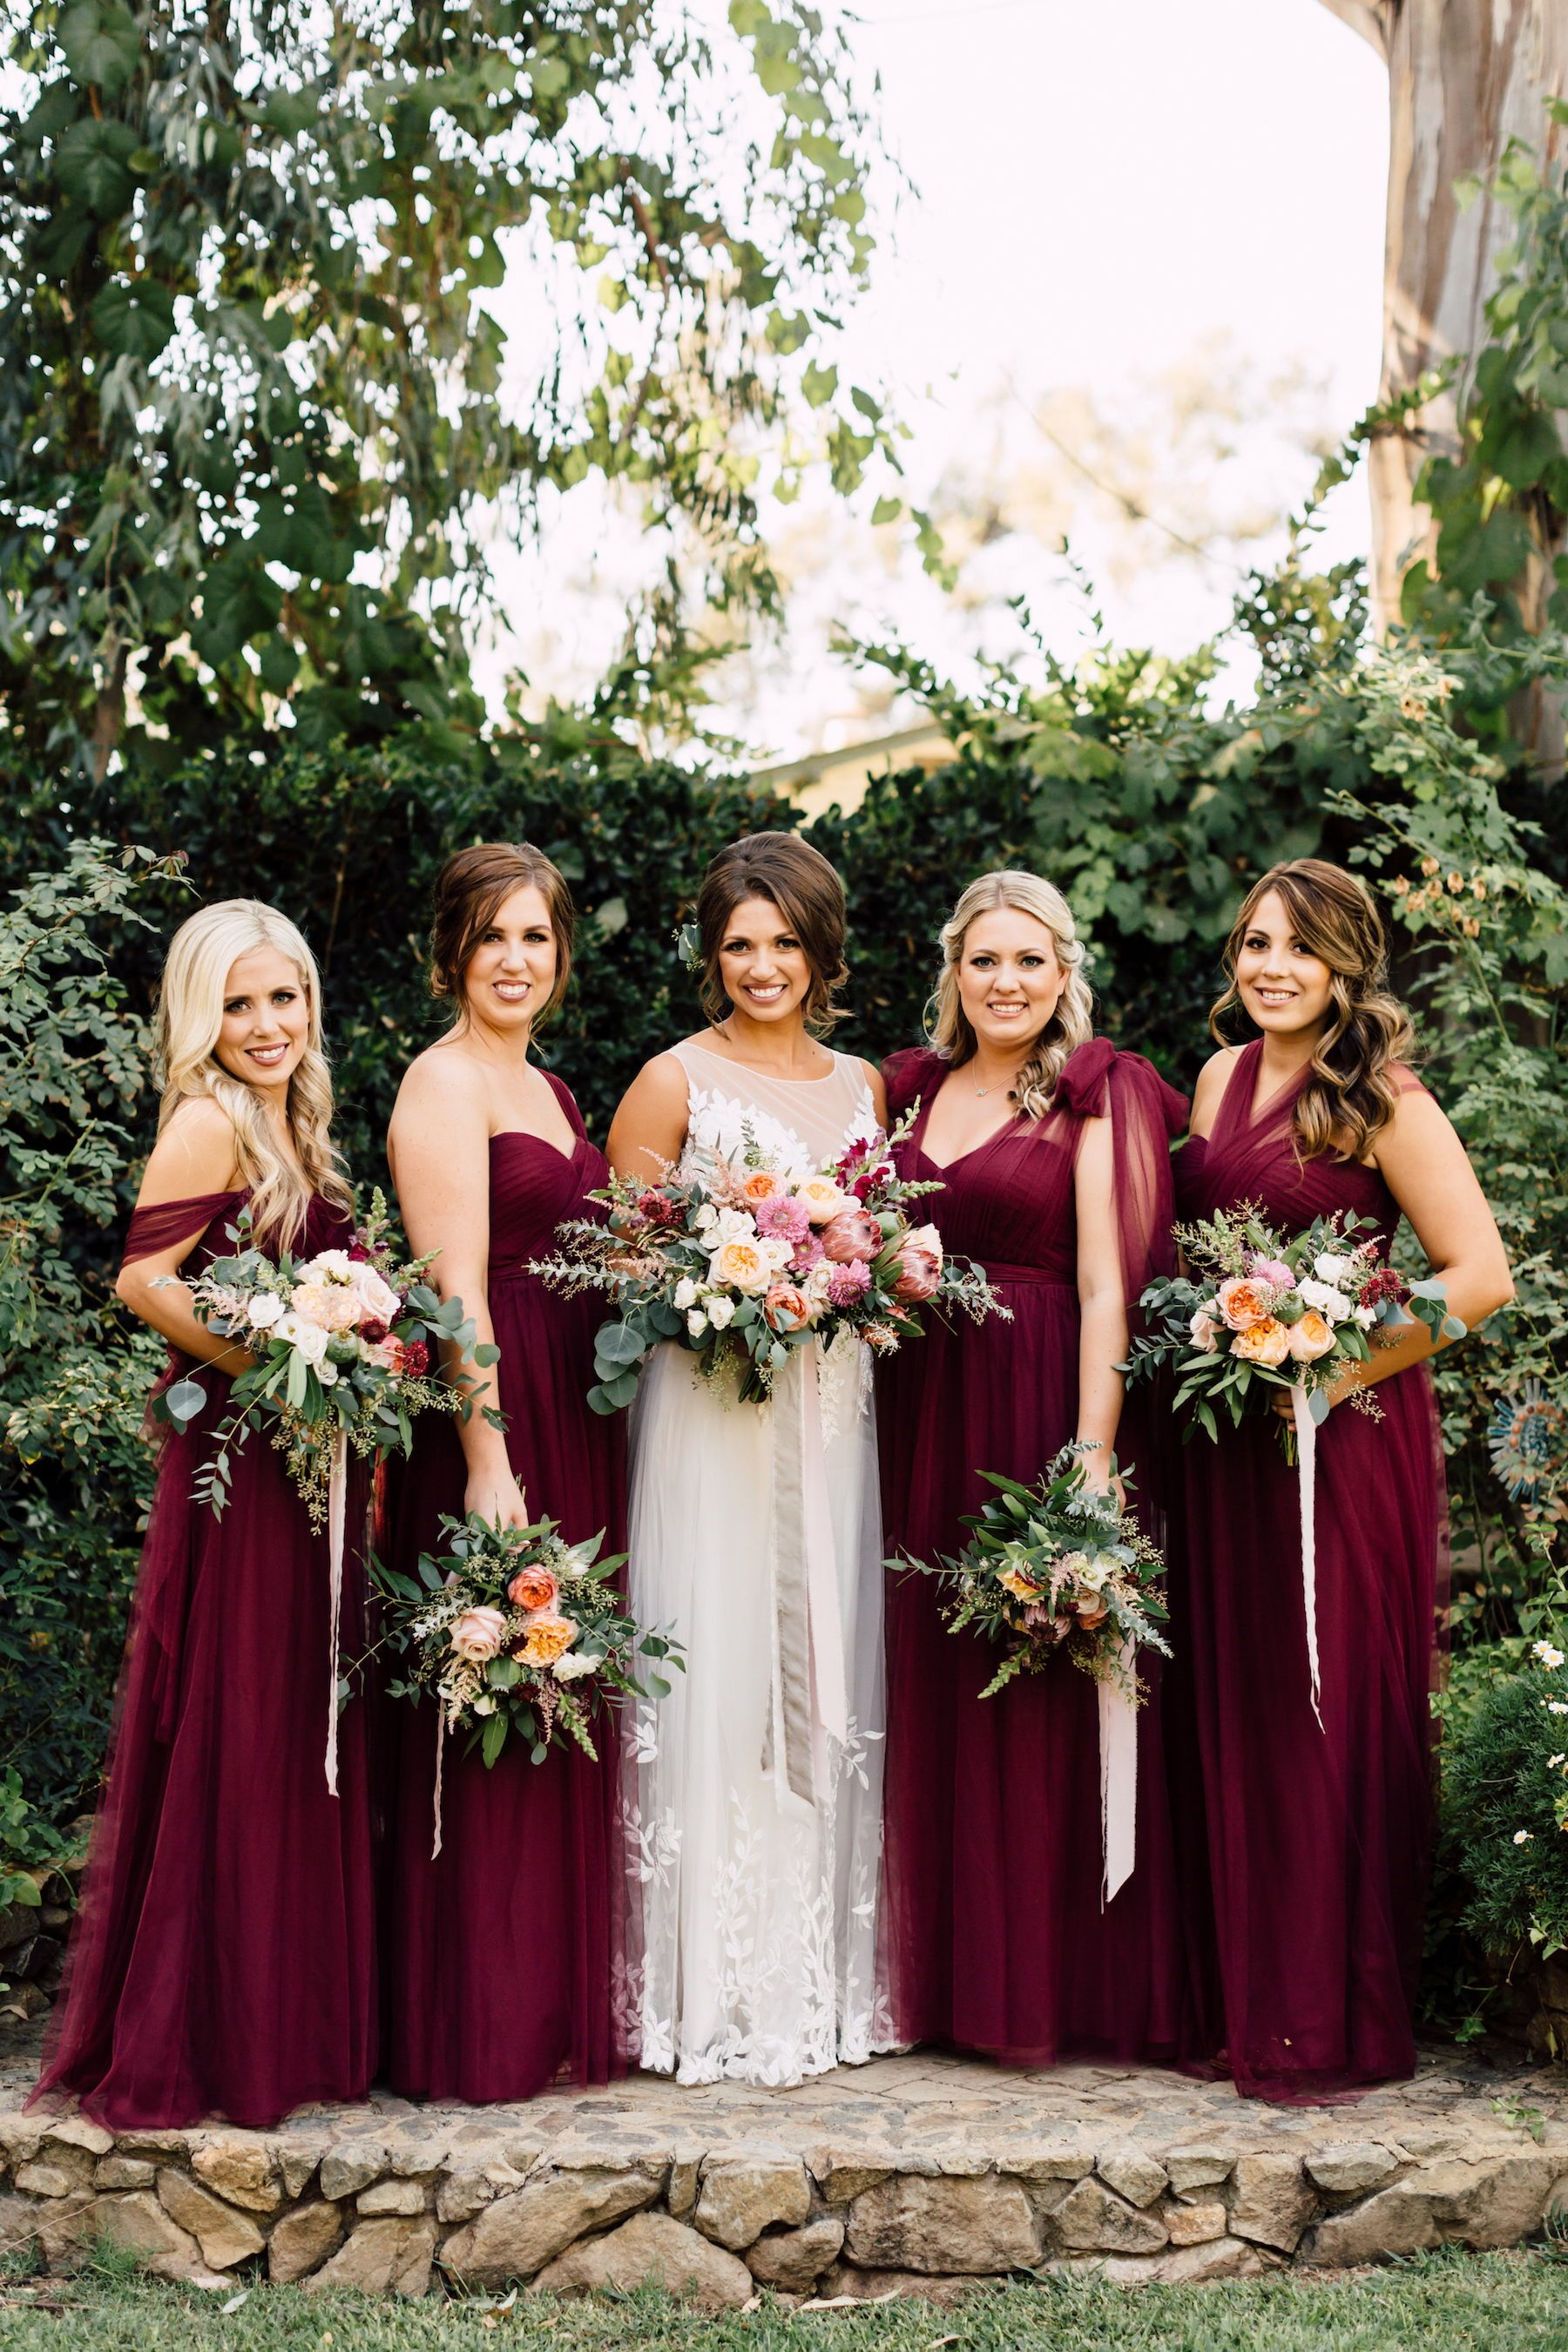 39 Of Our Favorite Ideas For Your Fall Wedding Wedding Bridesmaid Dresses Fall Bridesmaid Dresses Purple Bridesmaid Dresses